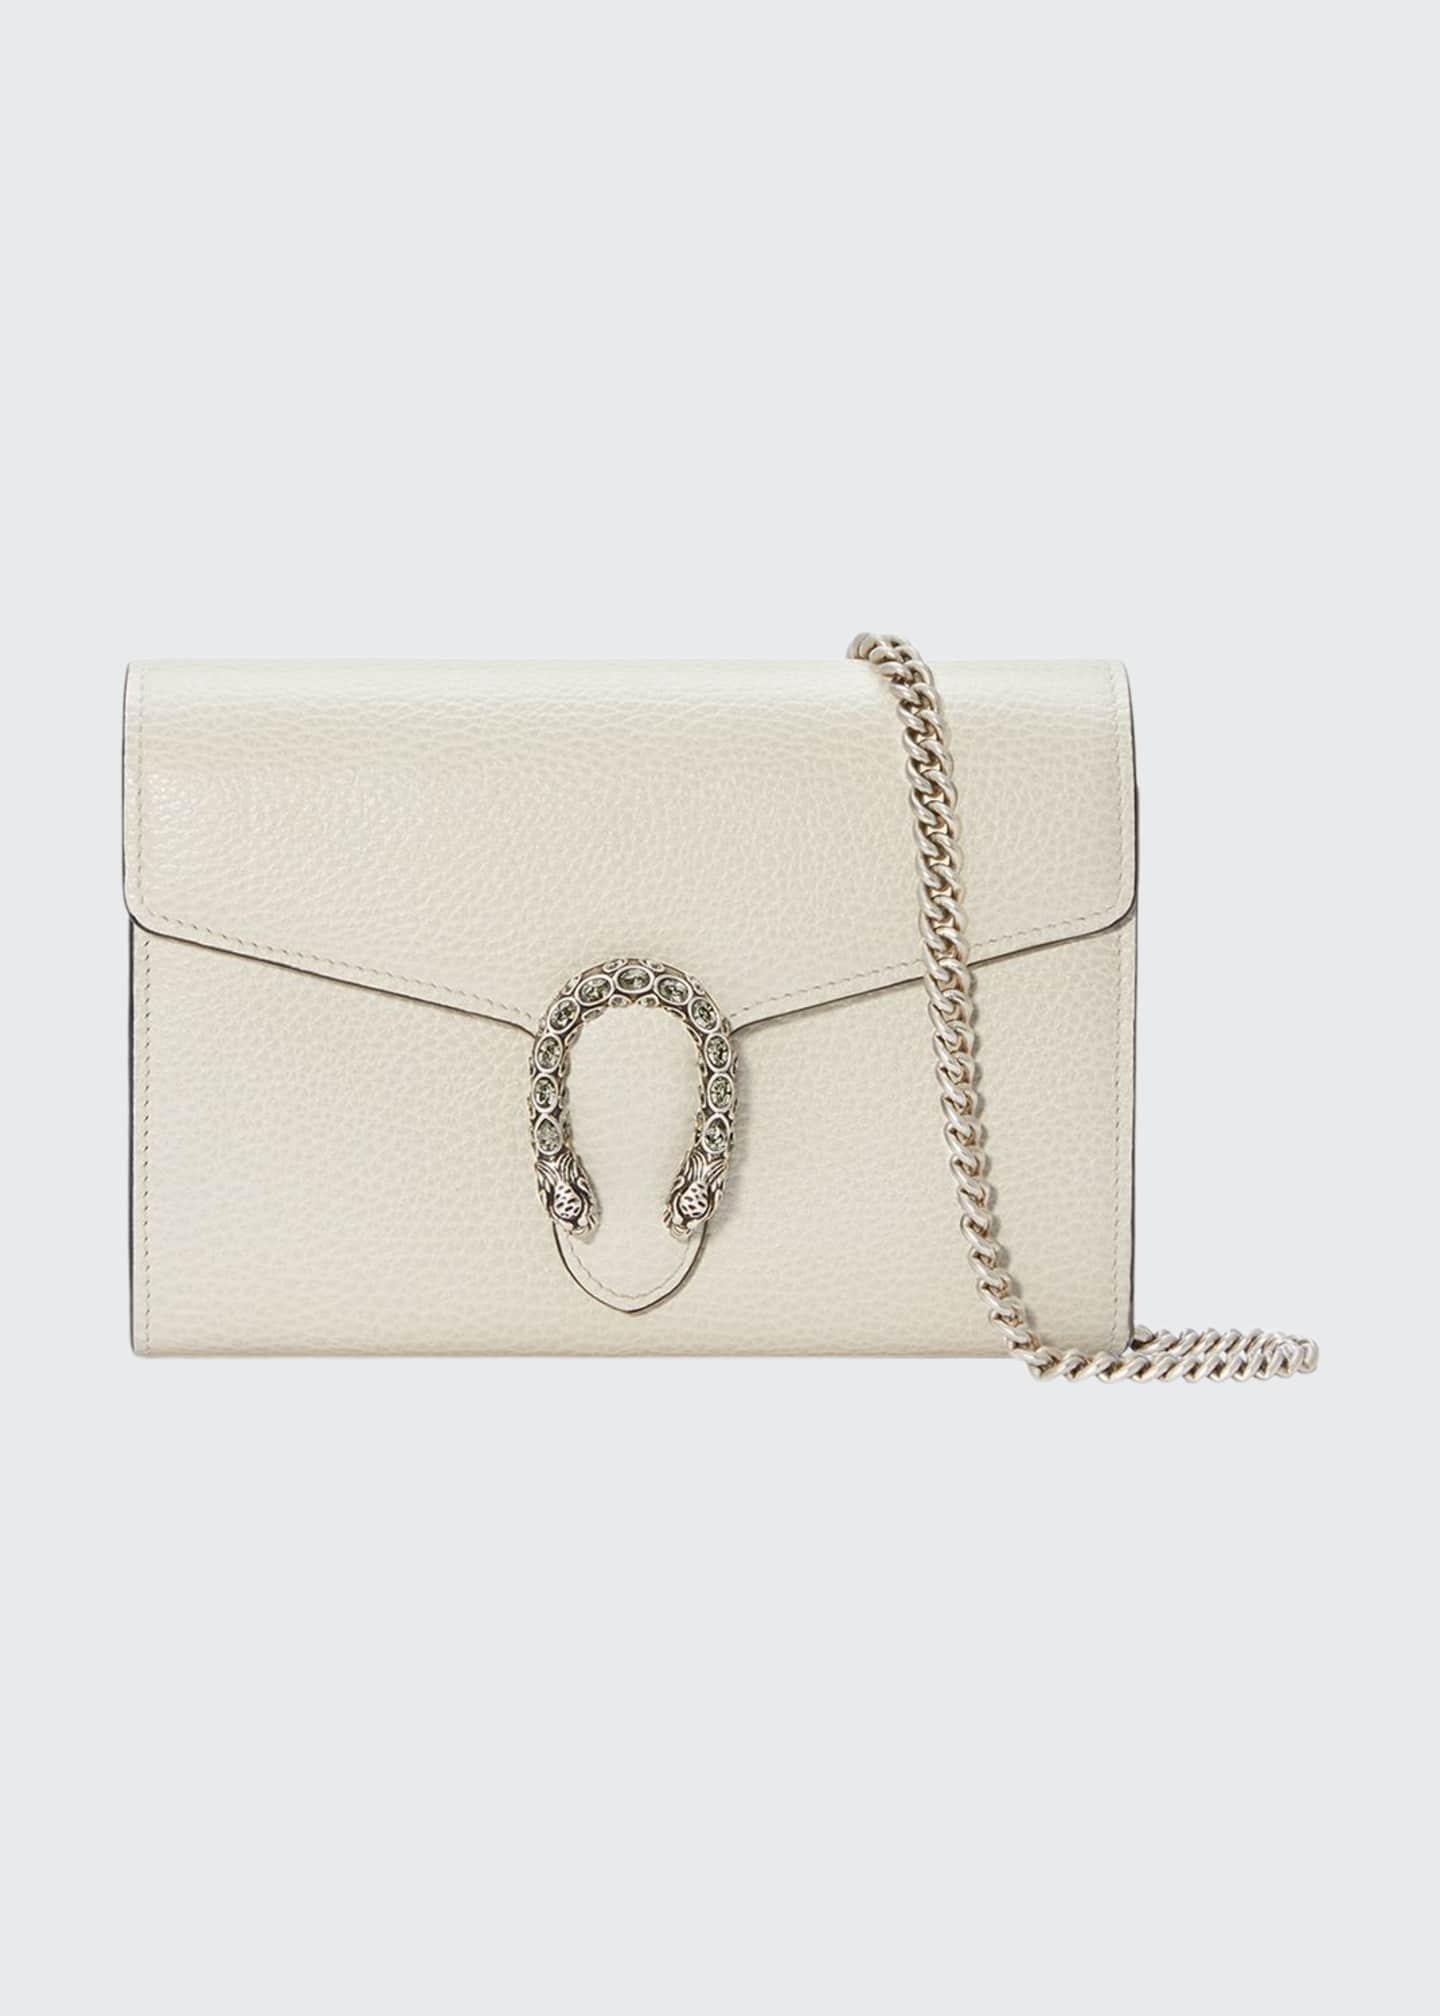 Gucci Dionysus Mini Leather Chain Bag